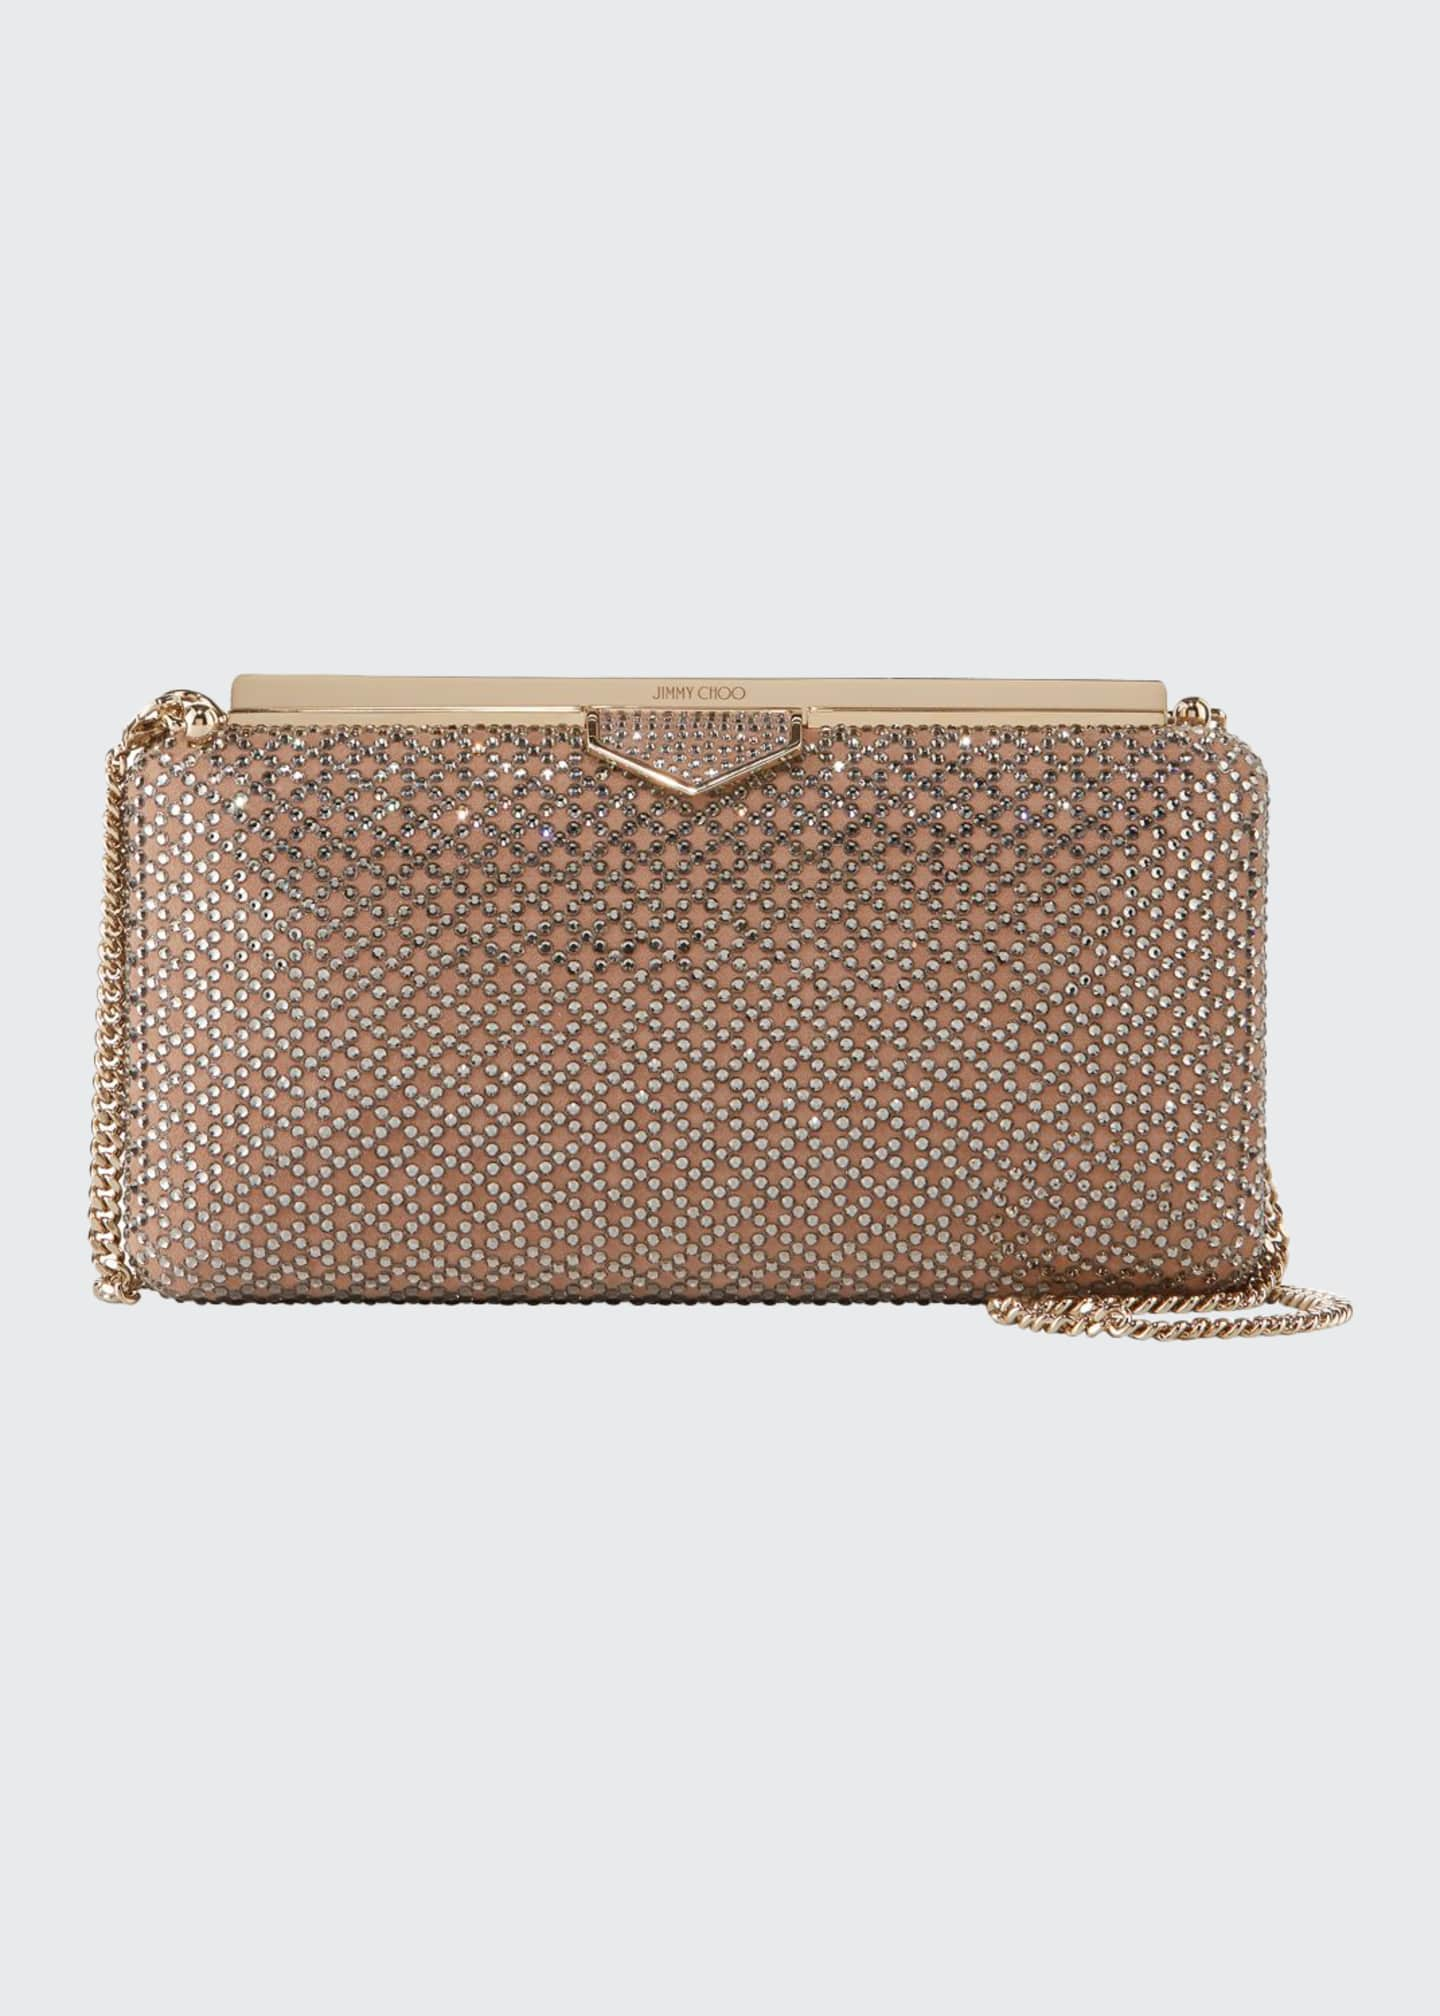 Jimmy Choo Ellipse Embellished Suede Clutch Bag